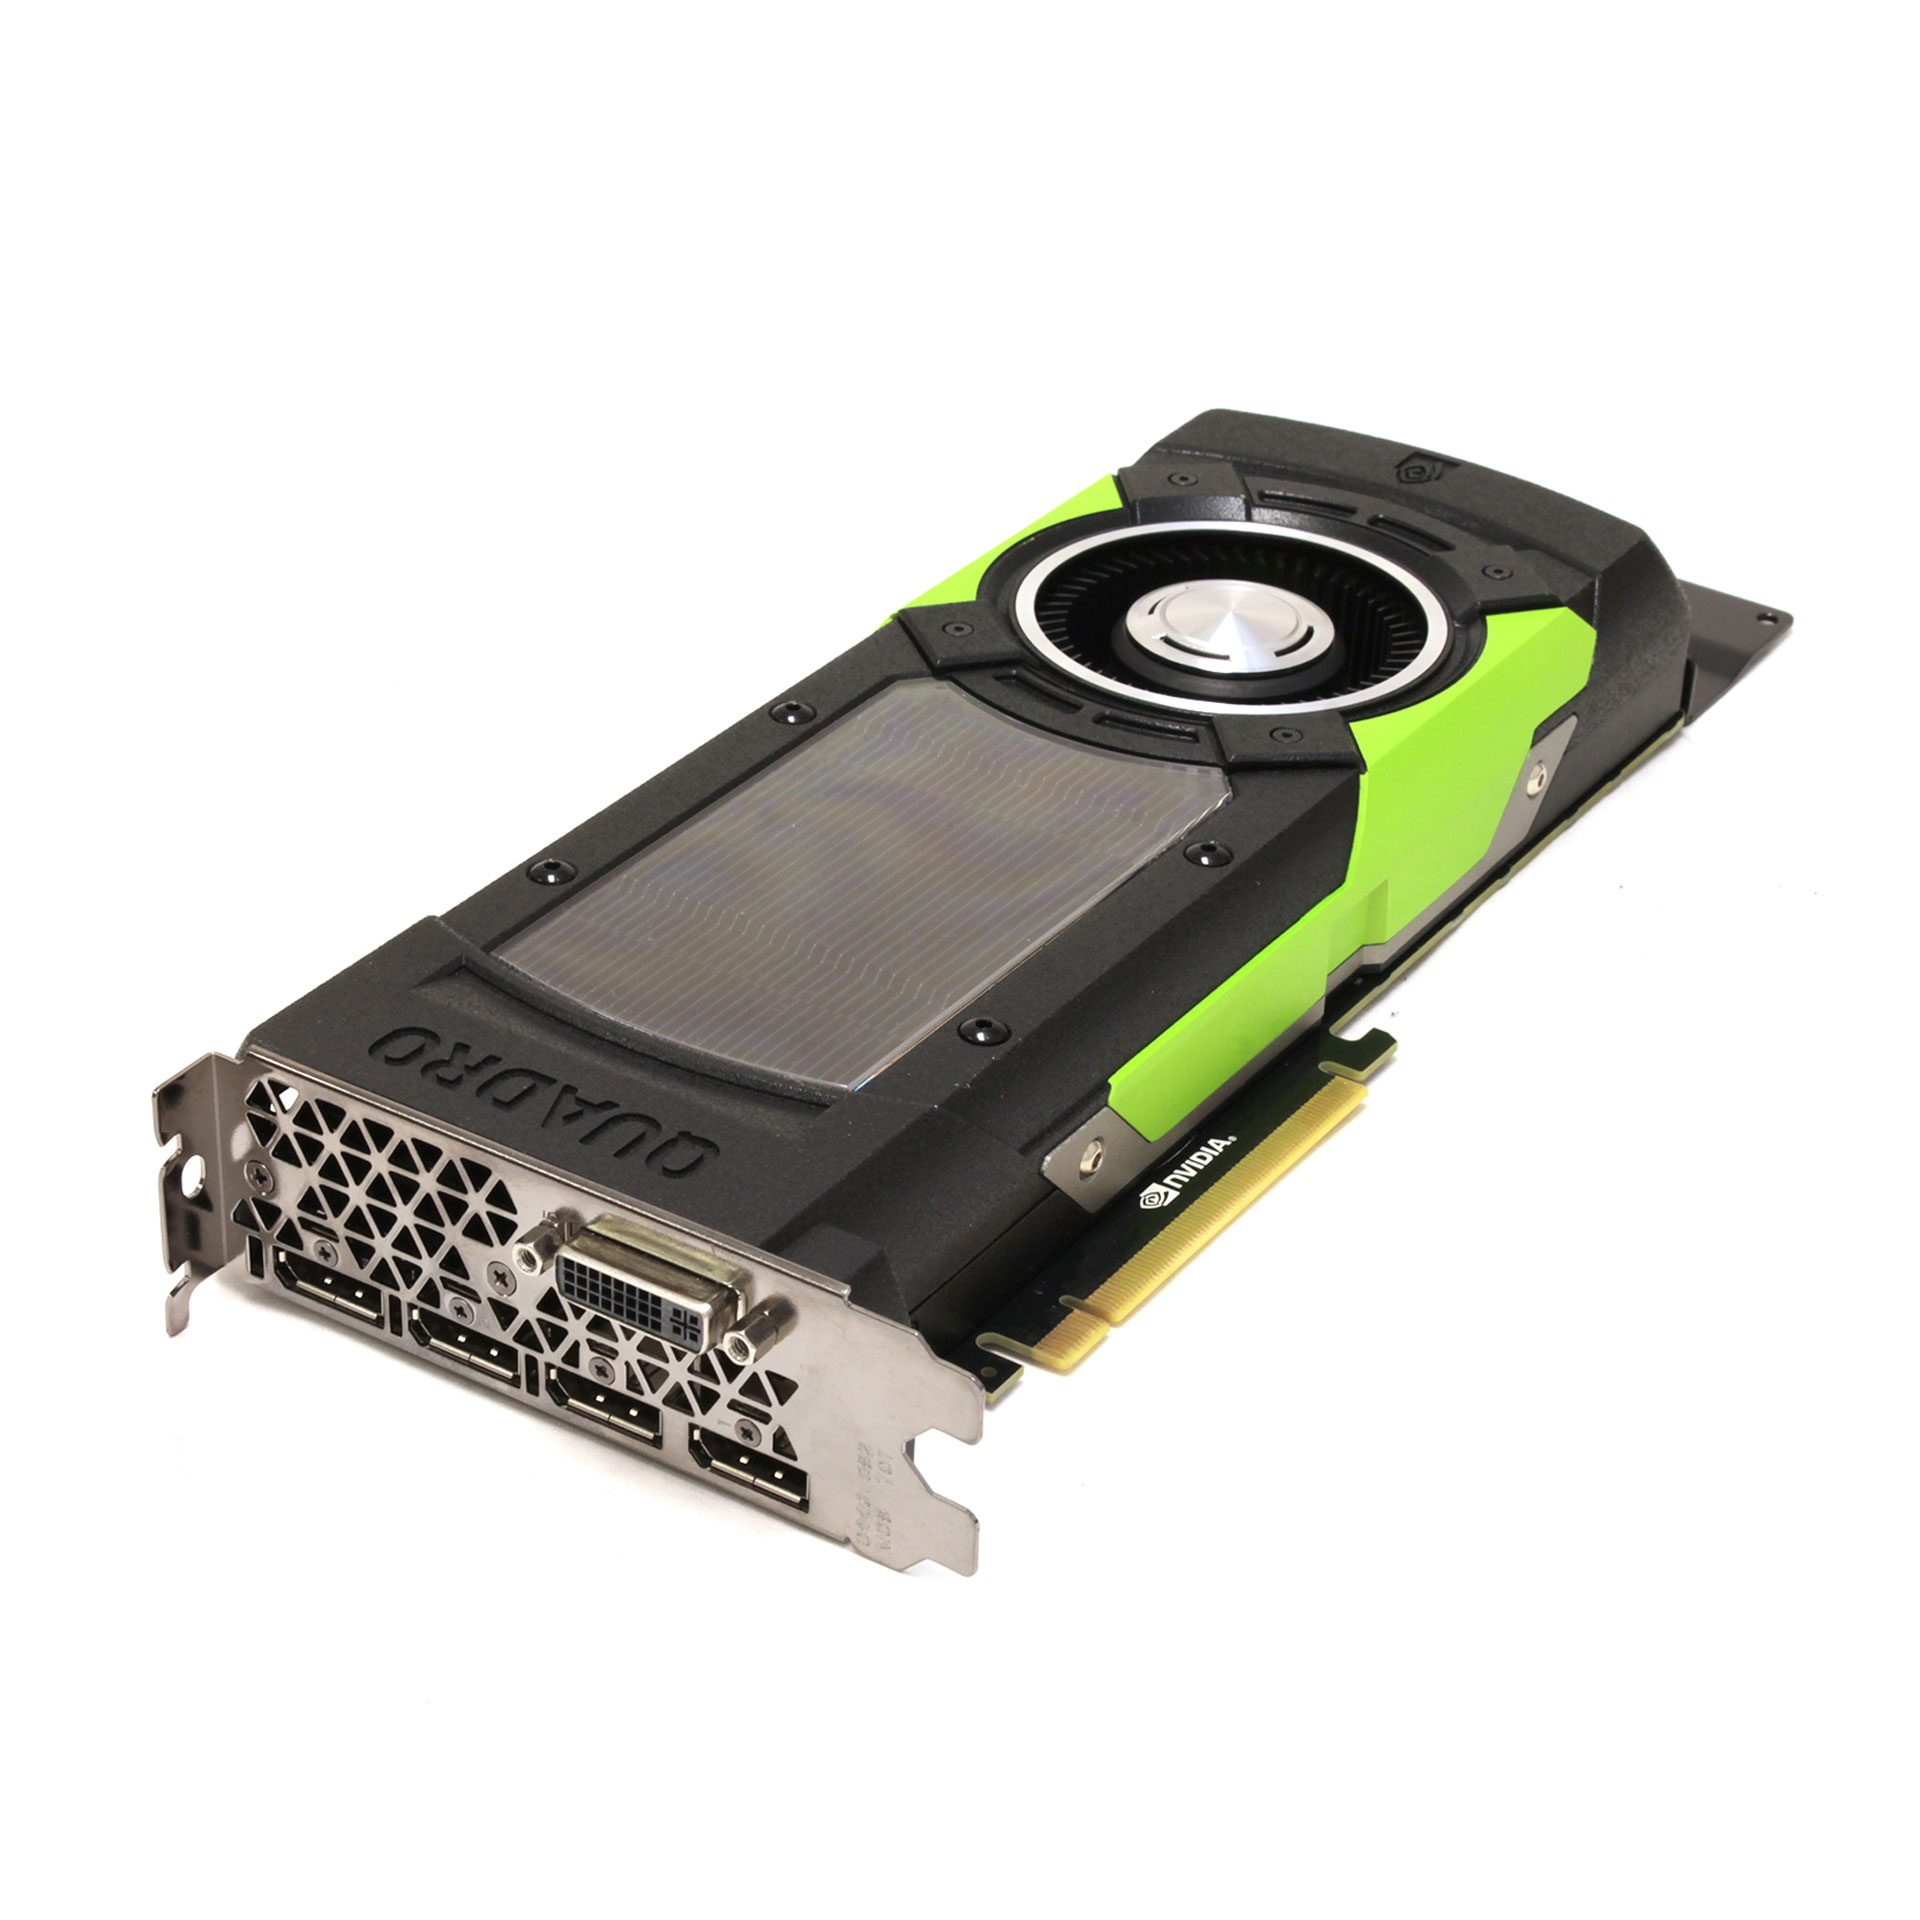 PNY Nvidia Quadro M6000 12GB Graphics Card VCQKM6000-PB GPU